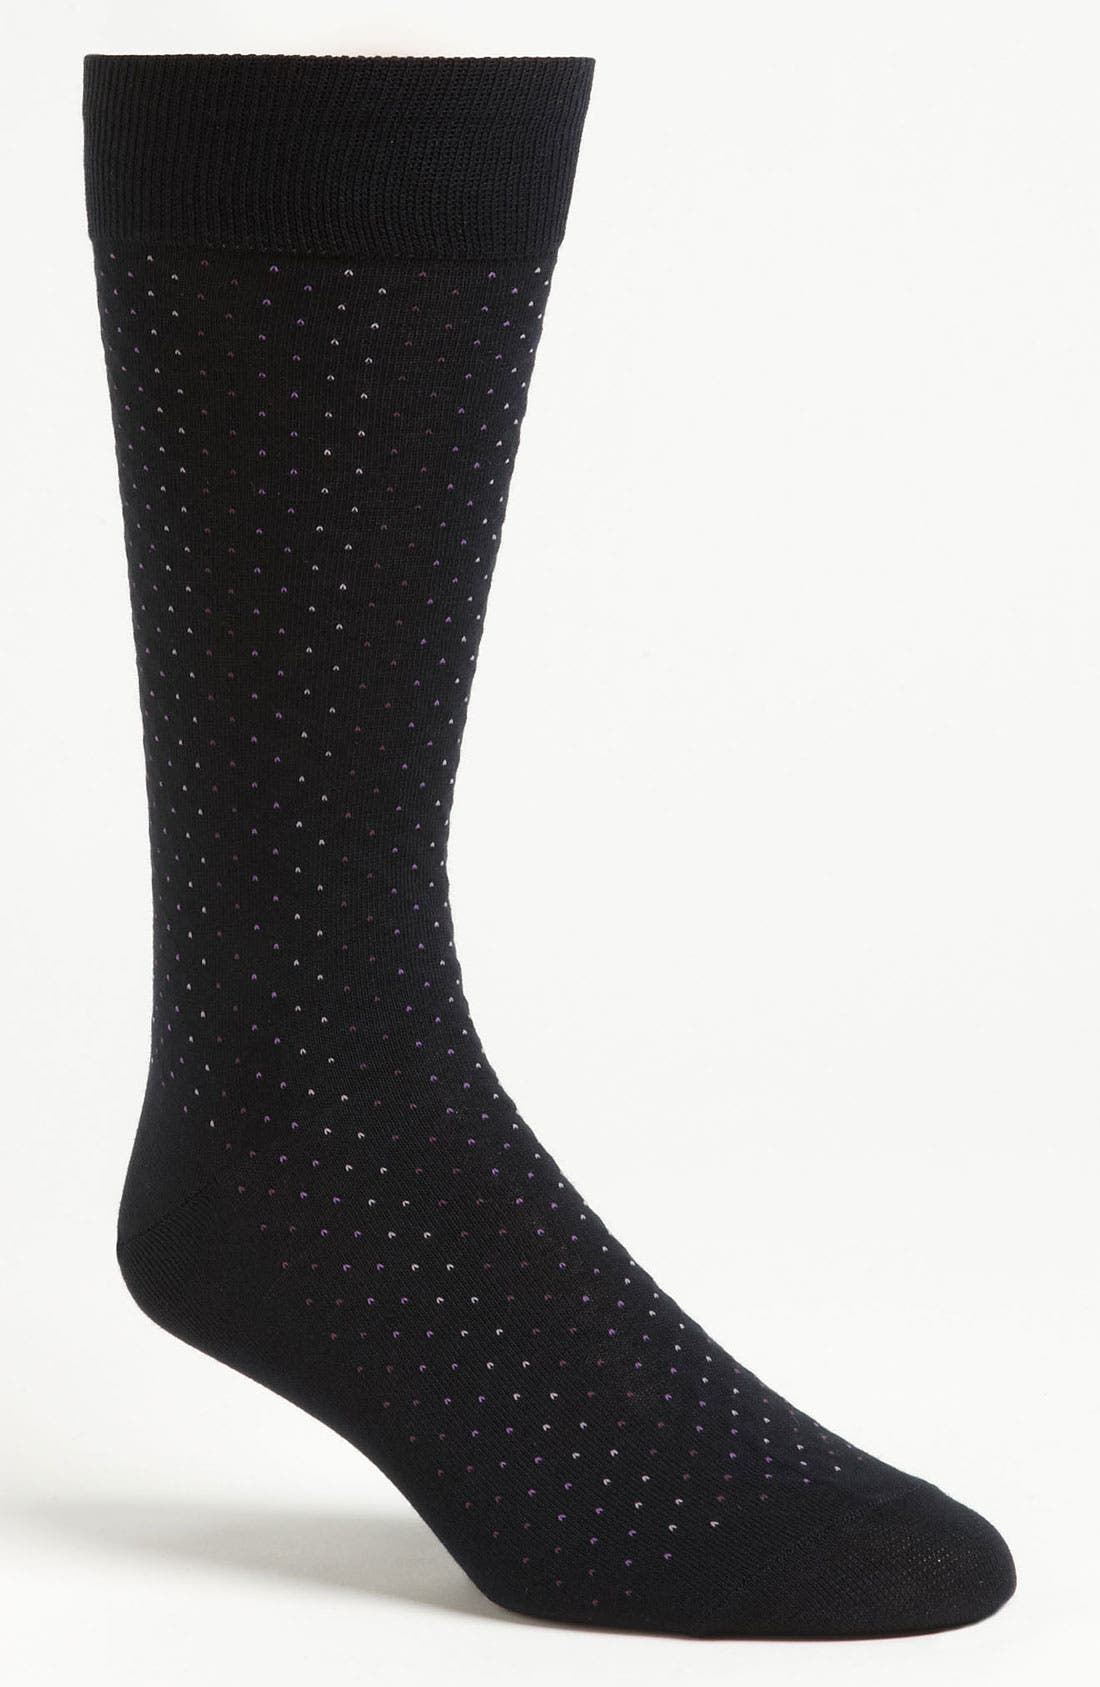 Alternate Image 1 Selected - Cole Haan 'Scattered Dots' Socks